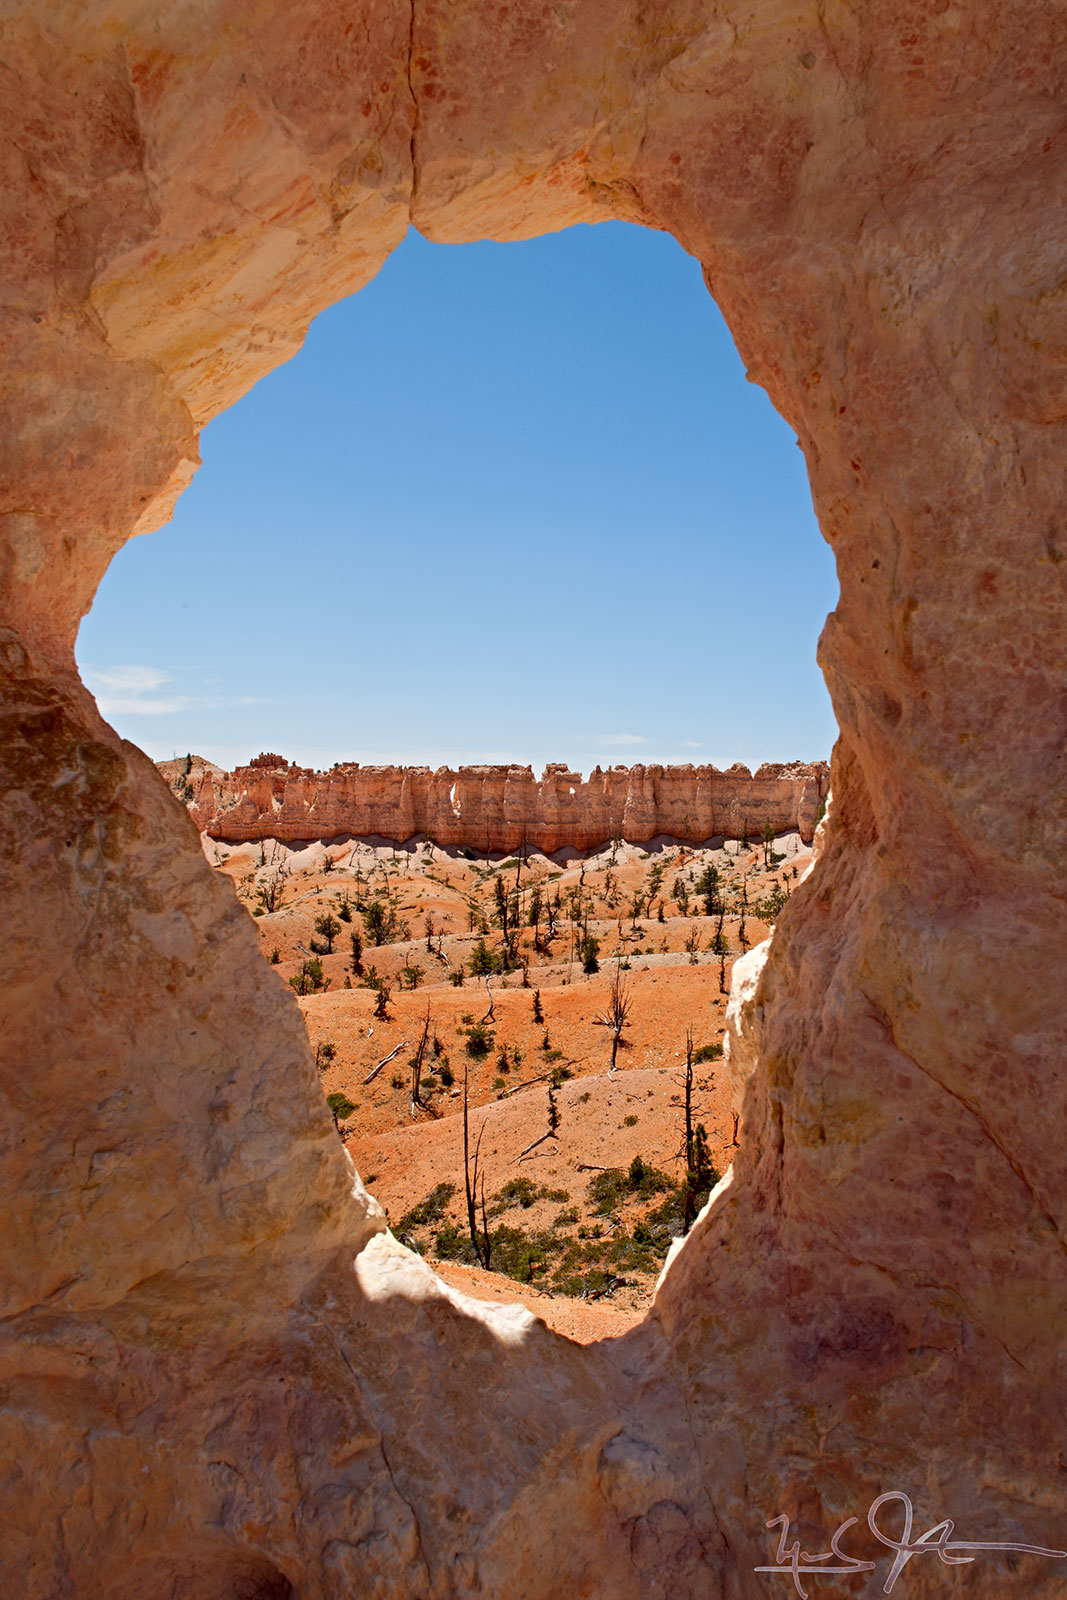 A window in the rock provides a view - Fairyland Loop trail in Bryce Canyon National Park, Utah.